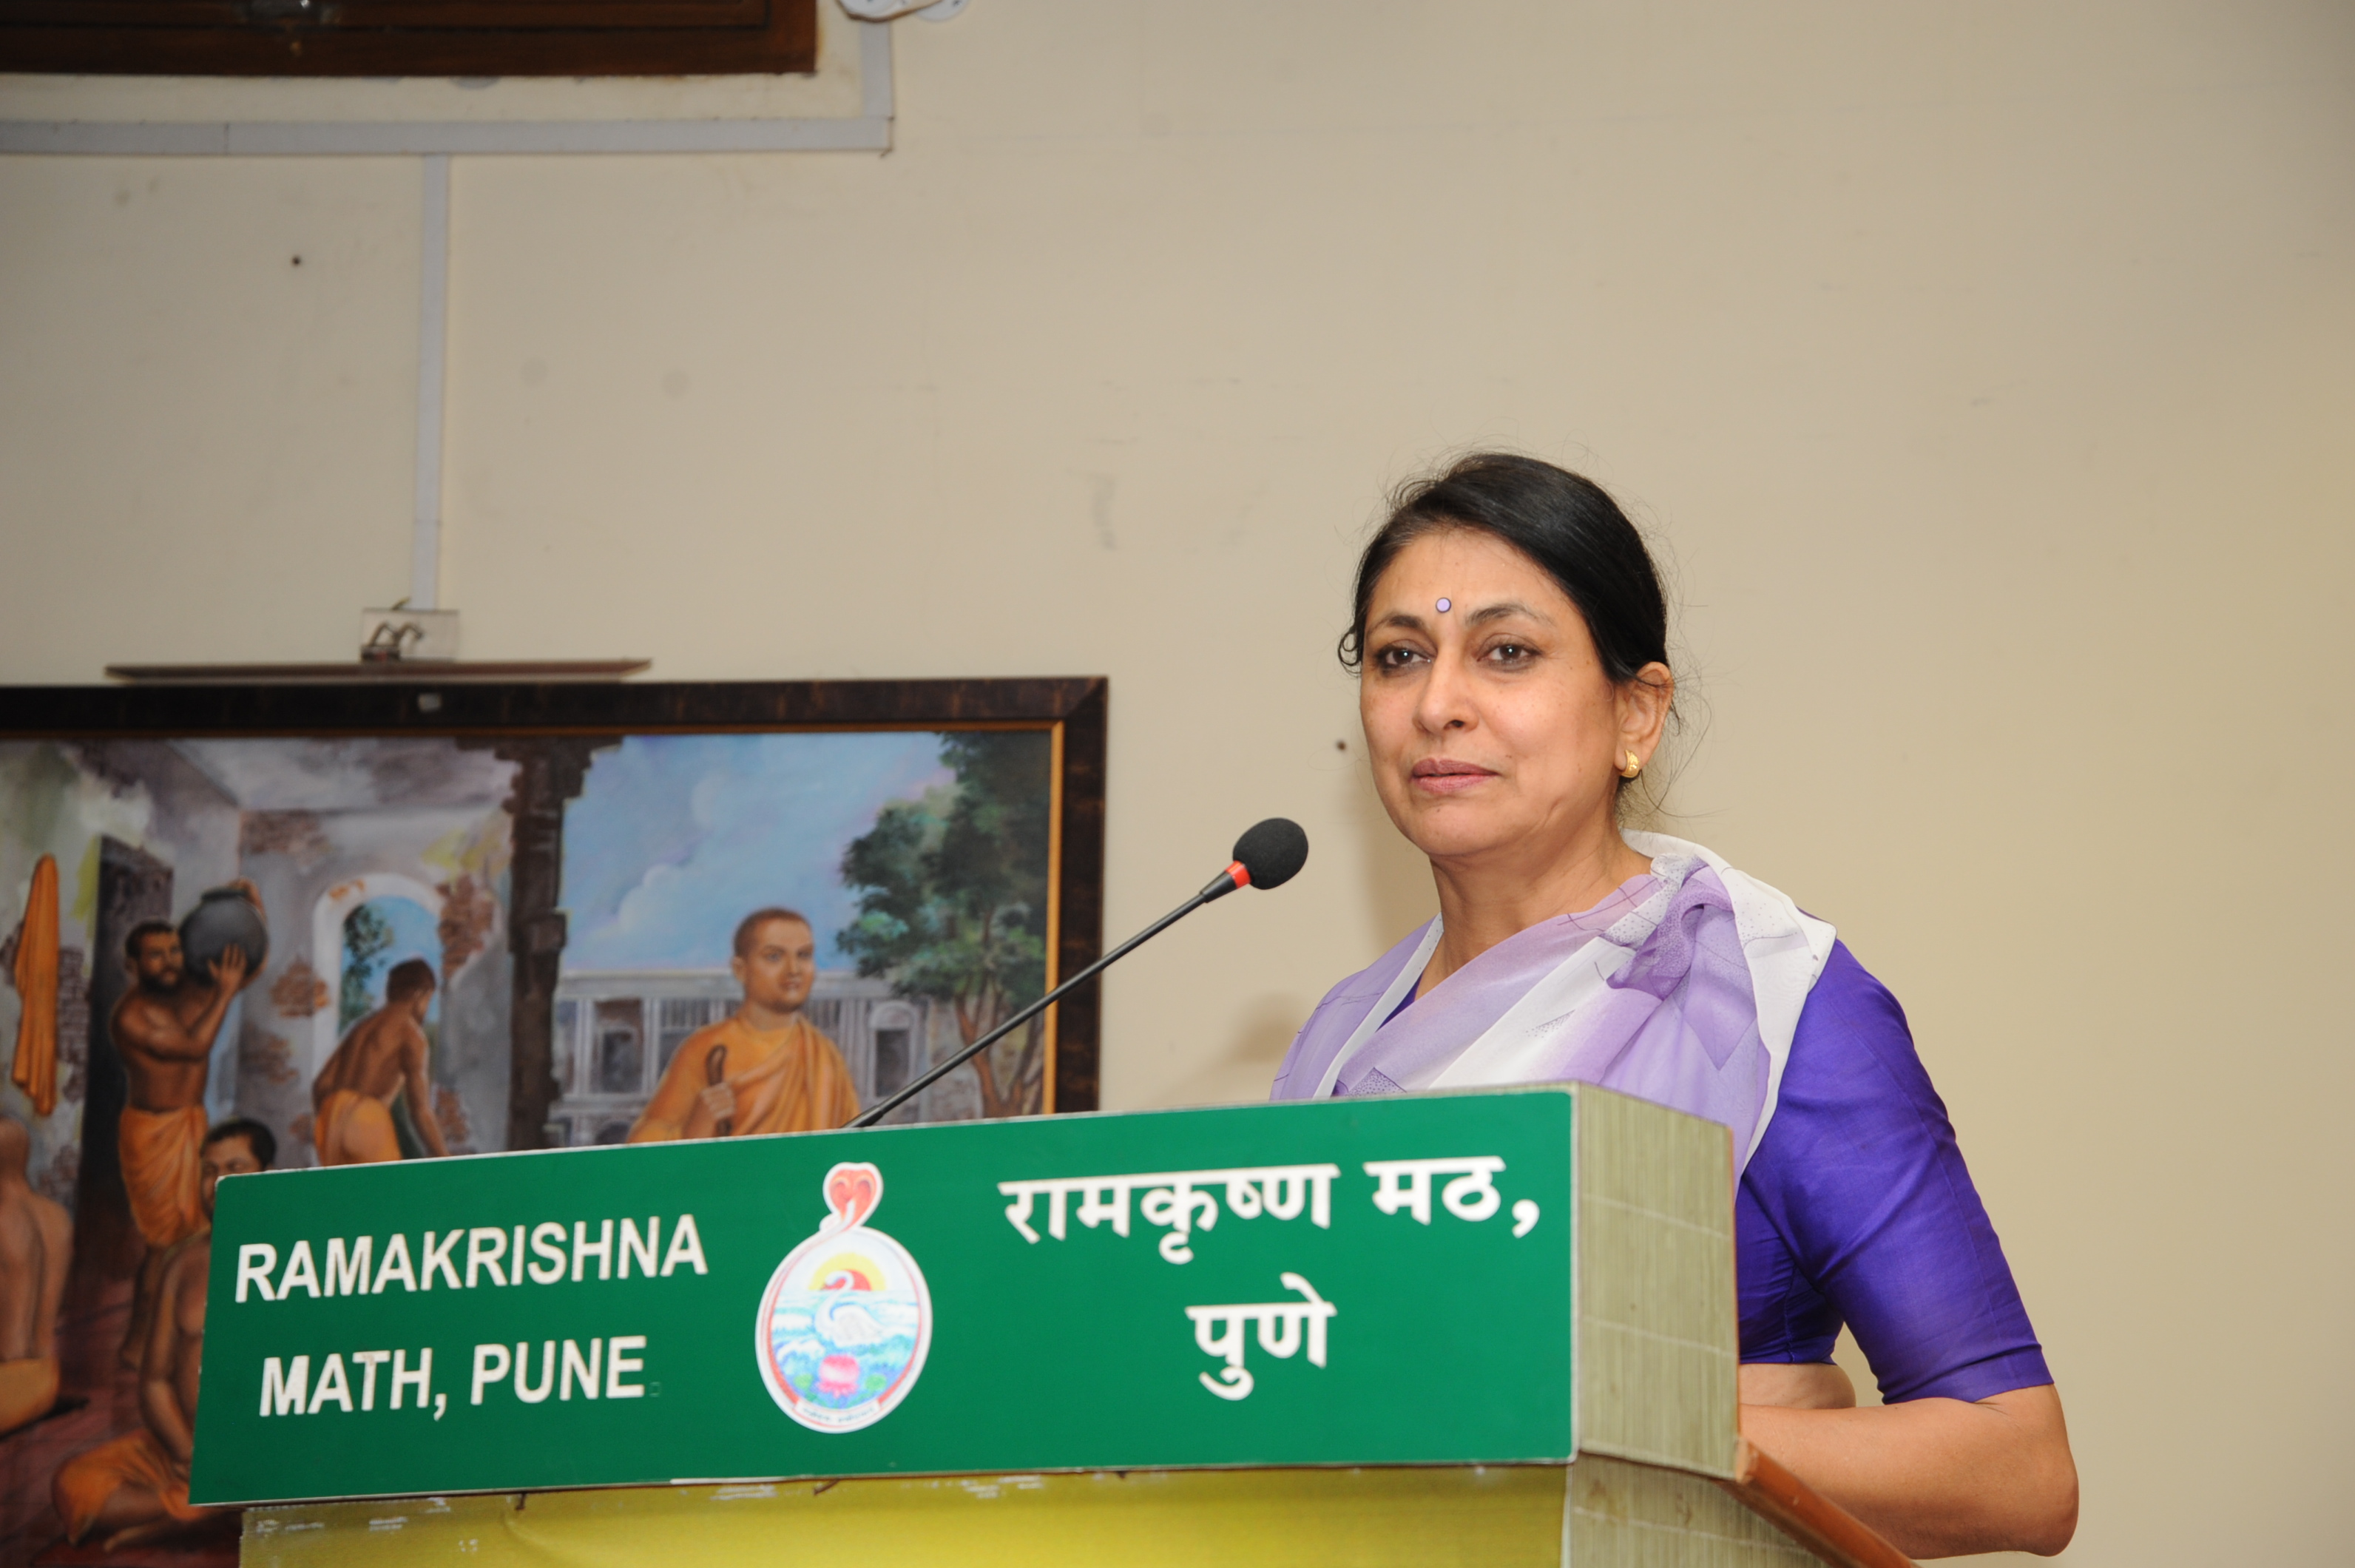 Meeran Borwankar, Indian Police Service (IPS) Officer in uniform & Public Speaker at Ramkrushna Math